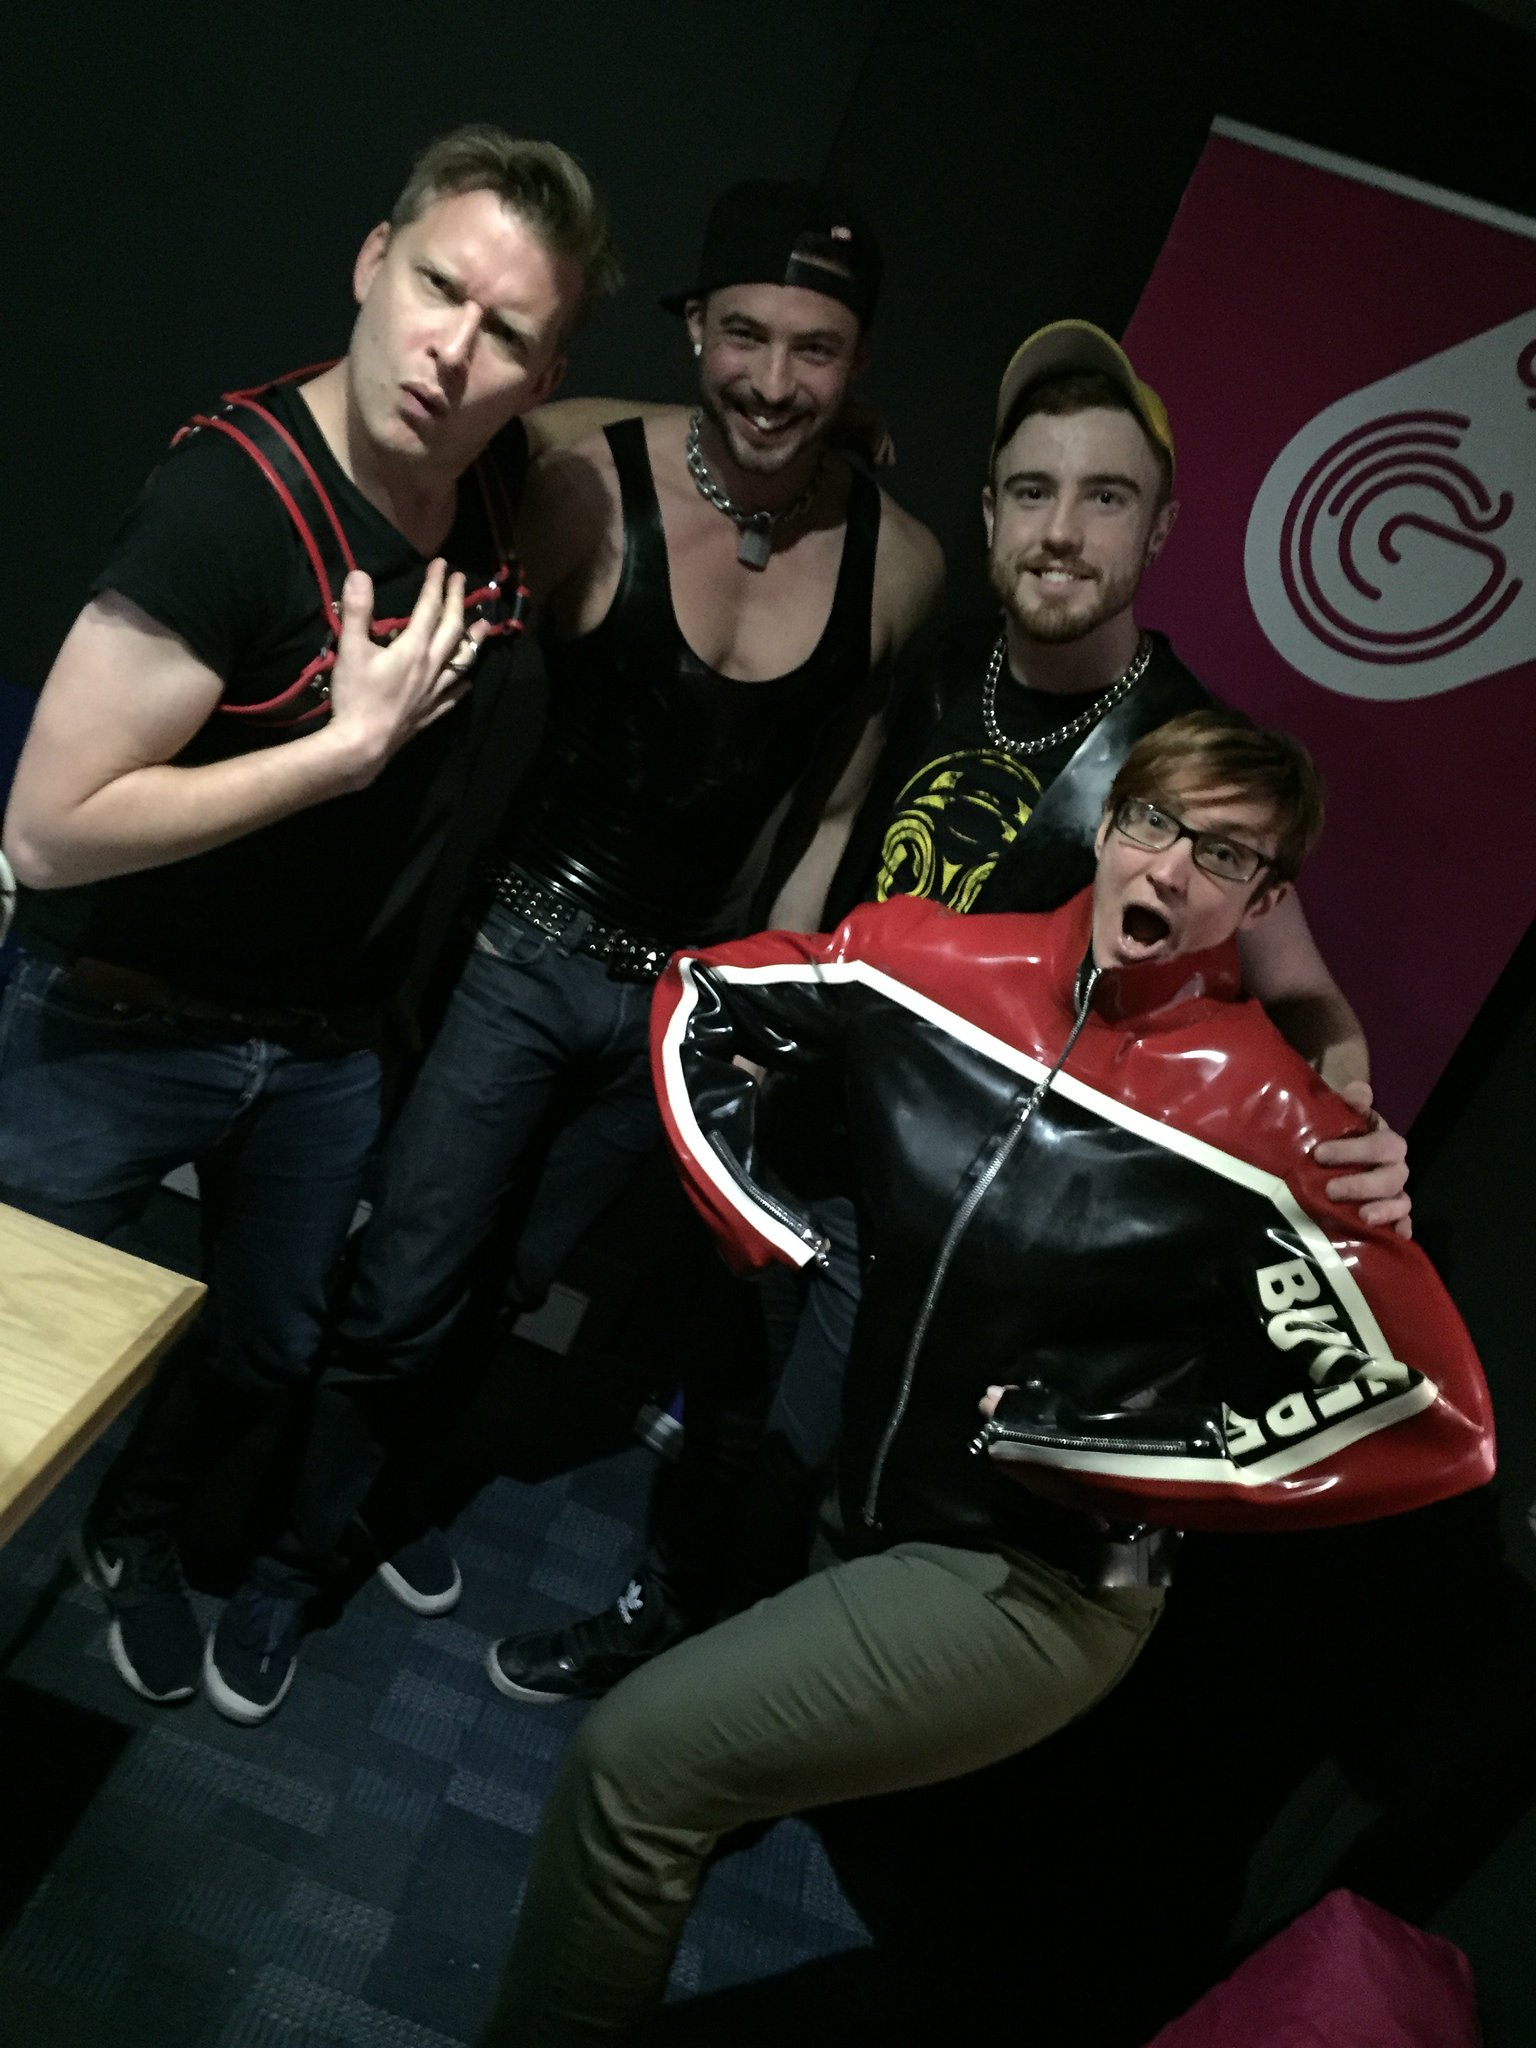 RT @Gaydio: Big thanks to @SamBarclayXXX and @JPDuboisxxx for popping in. More info at https://t.co/LGjLGl8pJN xx https://t.co/XiFfXAoCb3